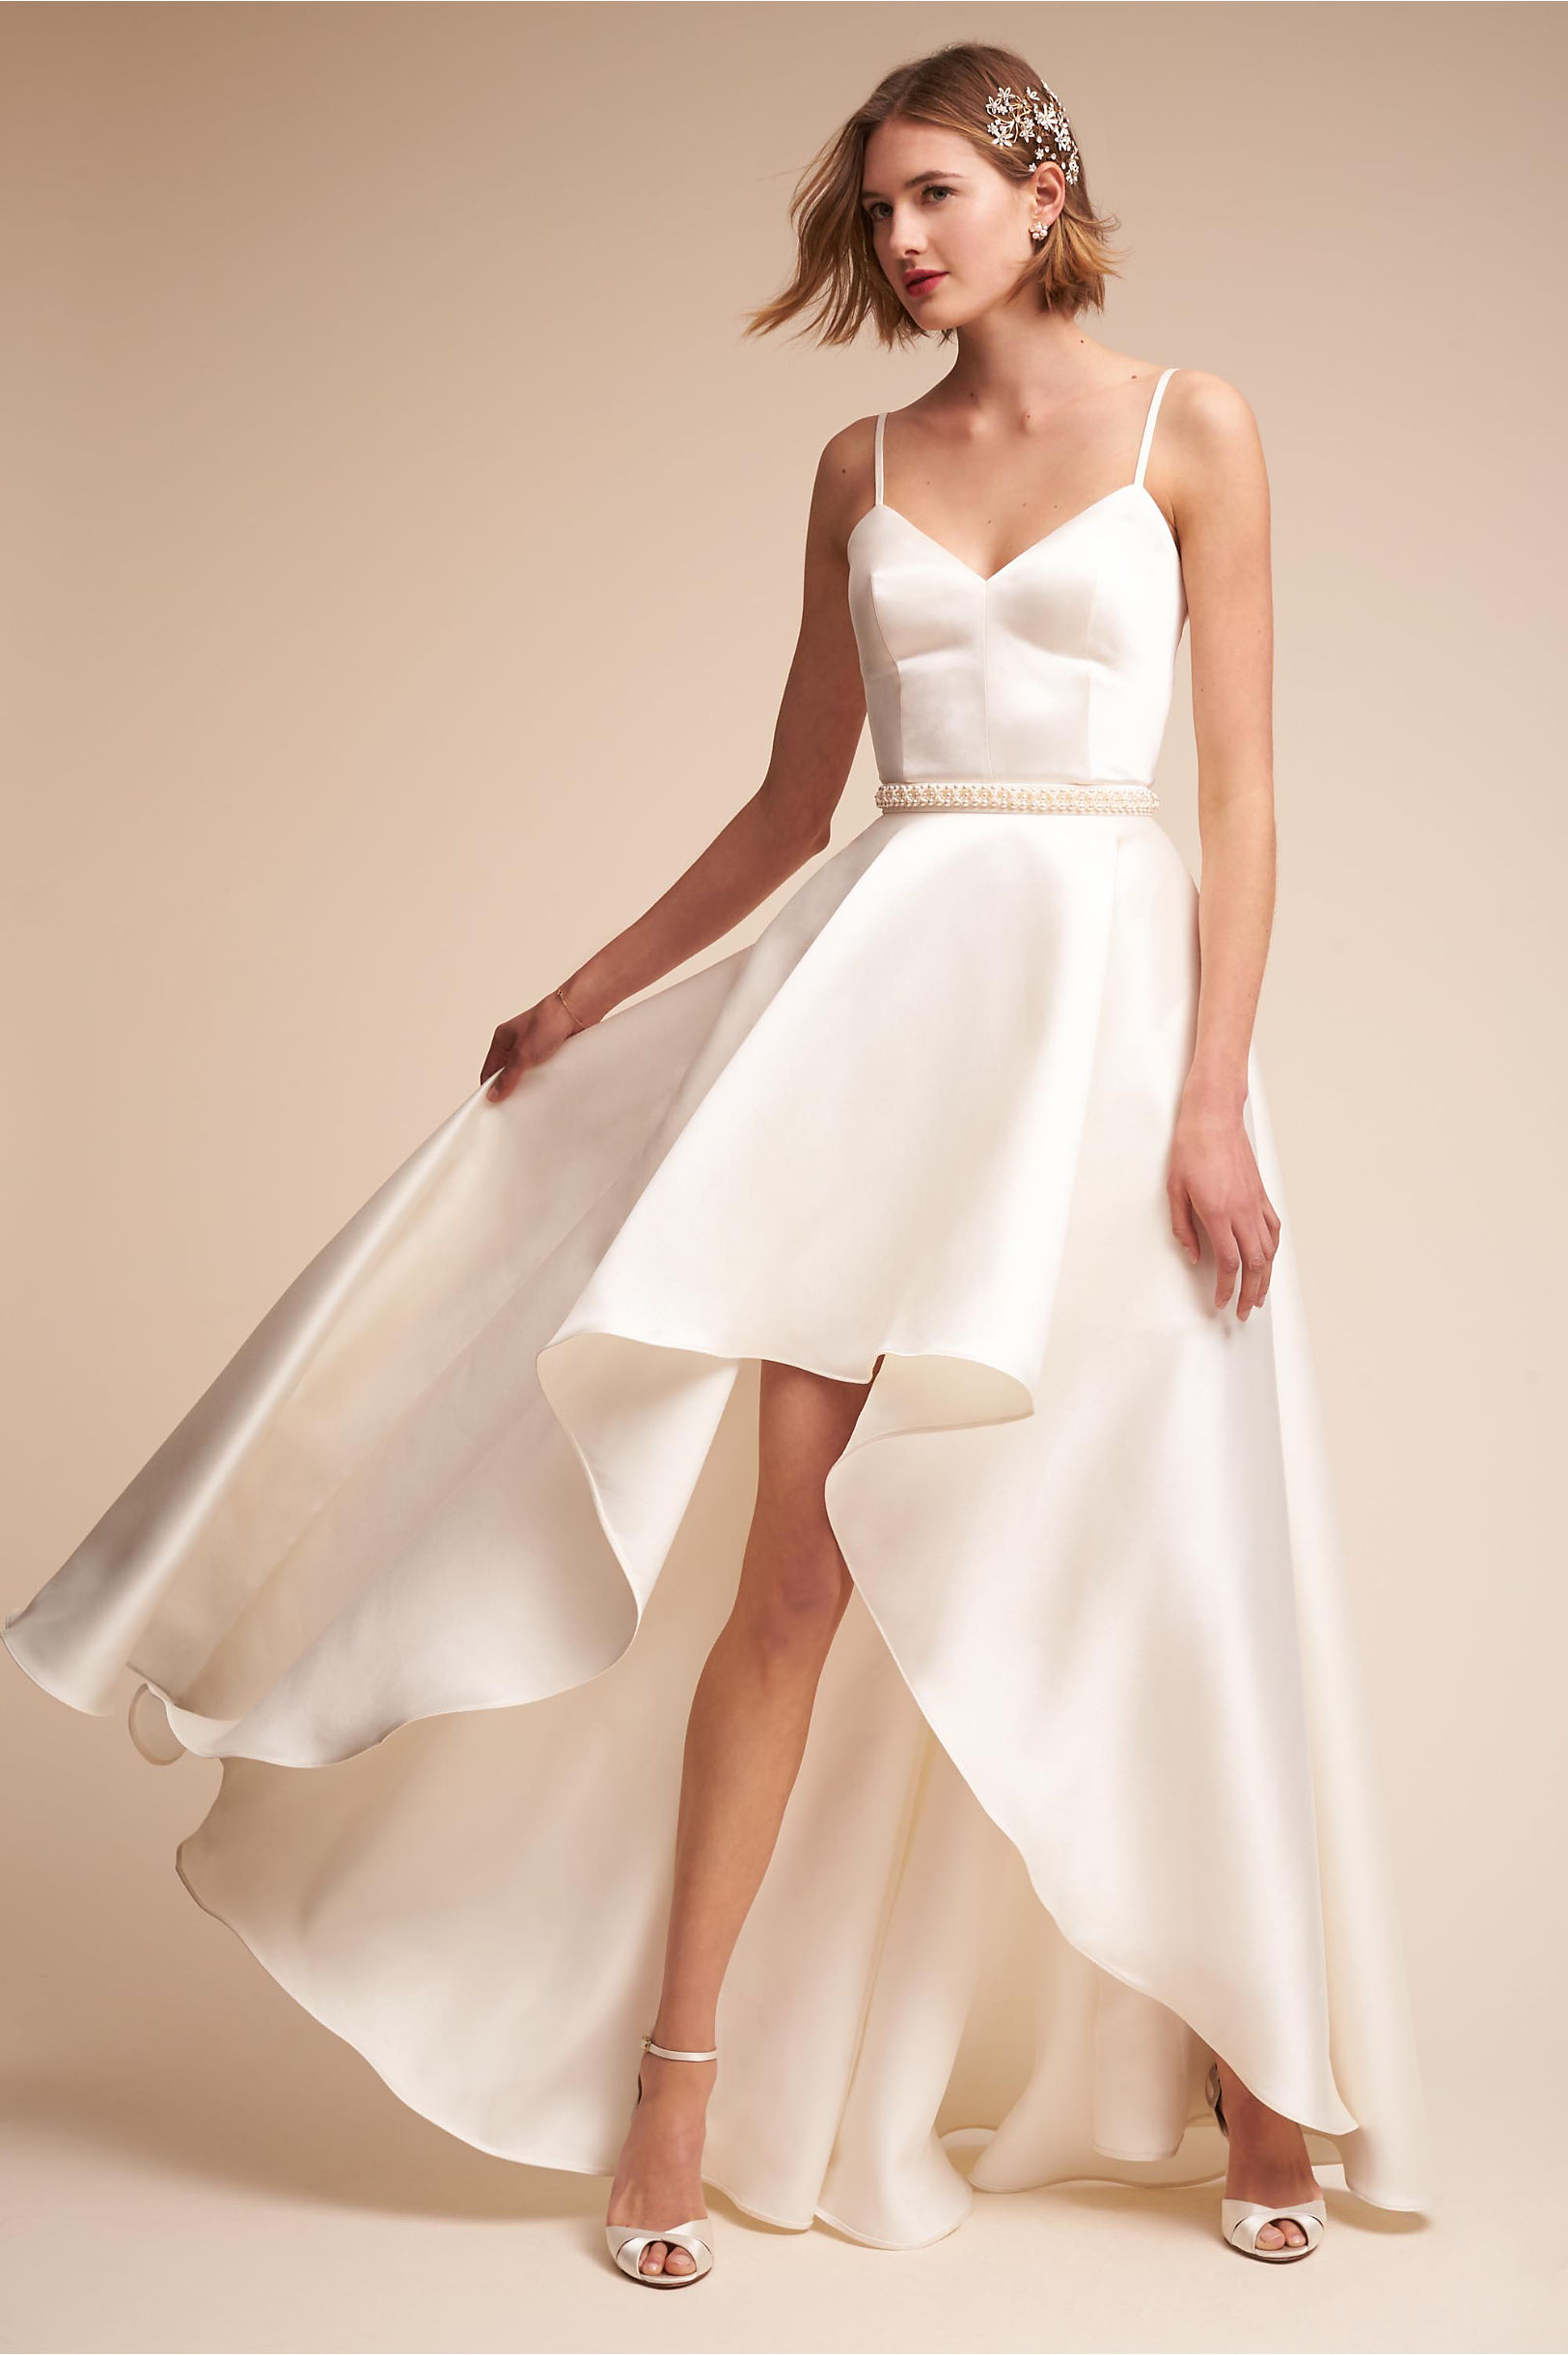 New Wedding Dresses, Shoes & Accessories | BHLDN